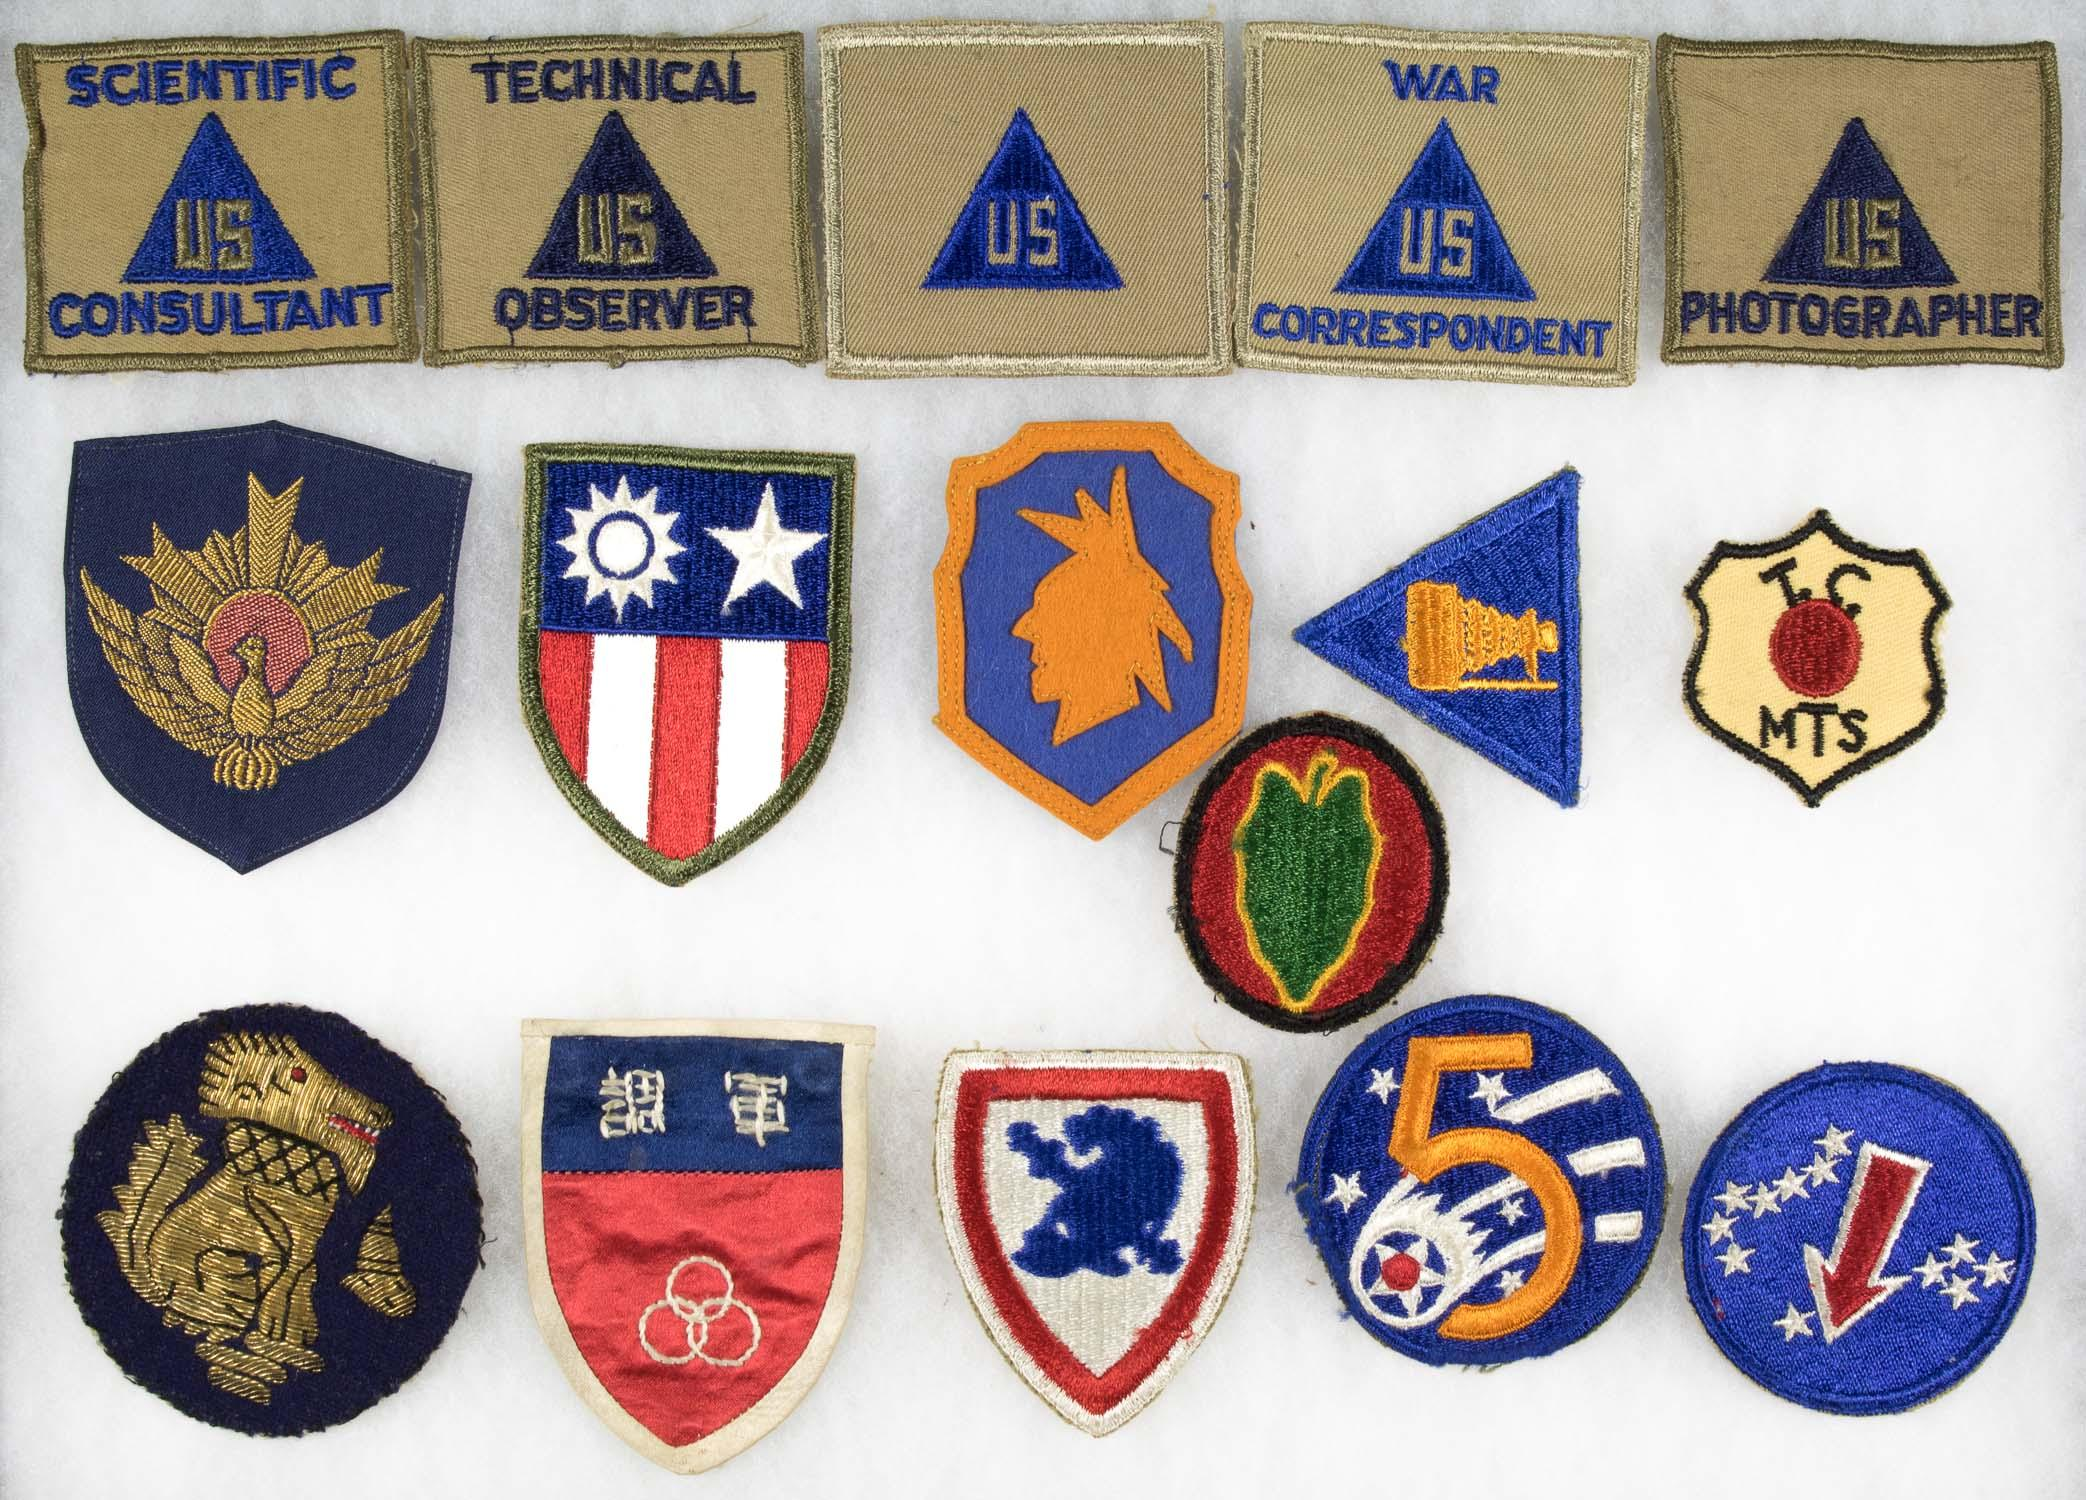 MISC. INSIGNIA GROUPING (16)